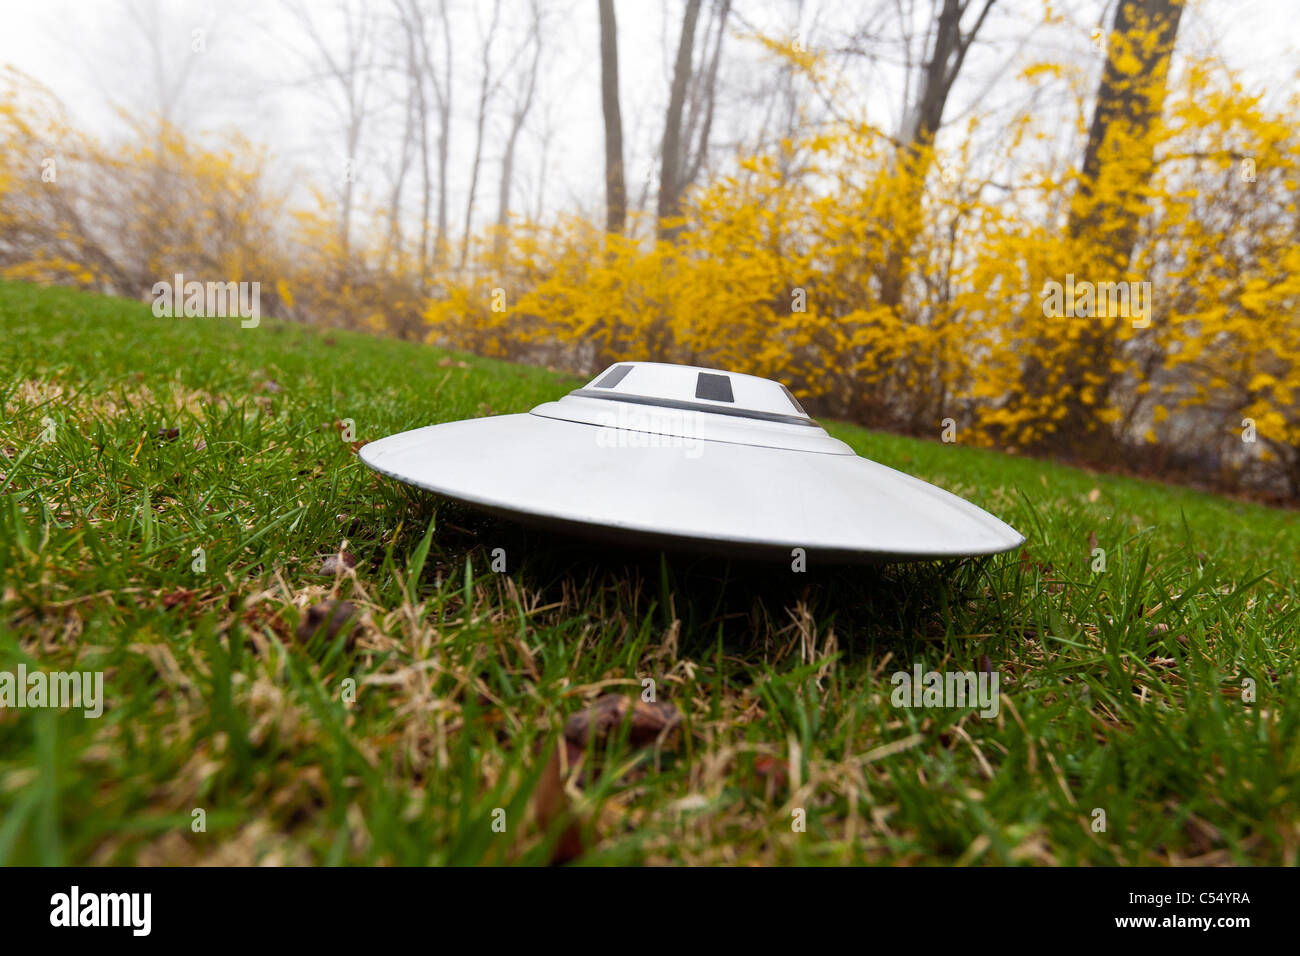 UFO on the ground. - Stock Image